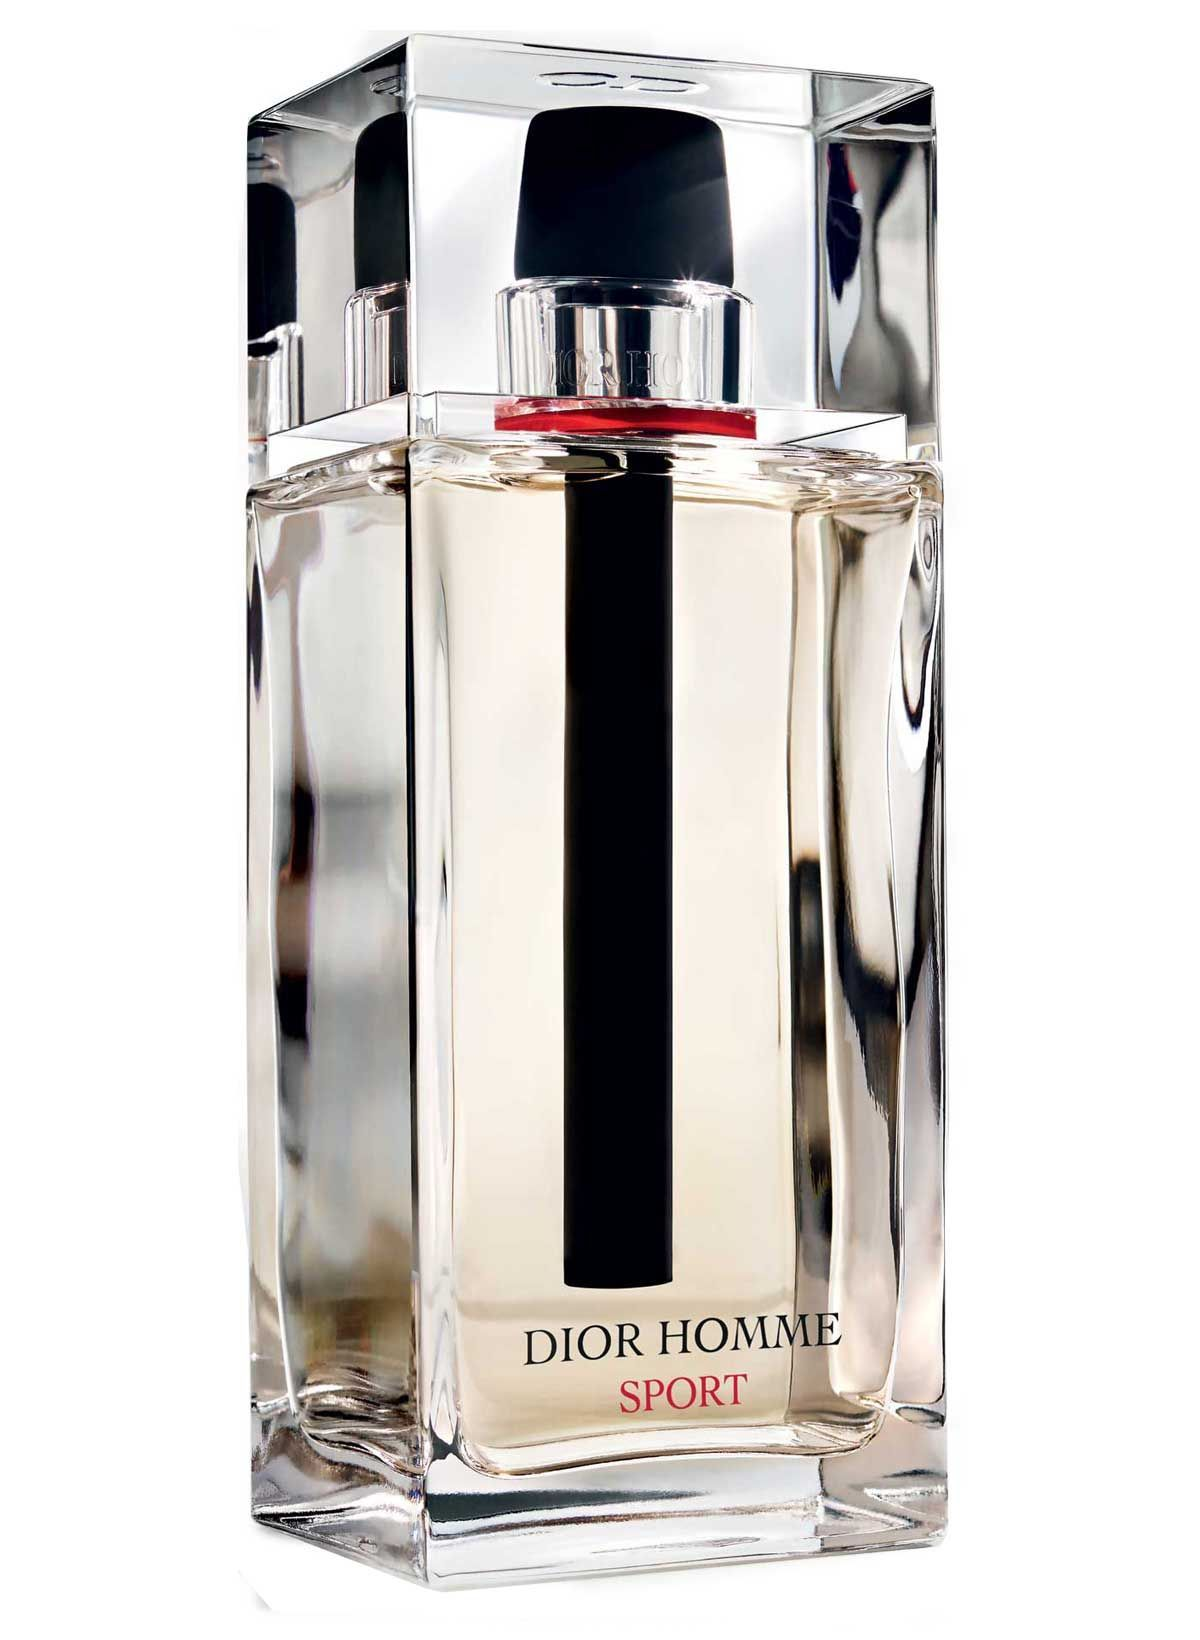 Dior Homme Sport 2017 Christian Dior Cologne A New Fragrance For